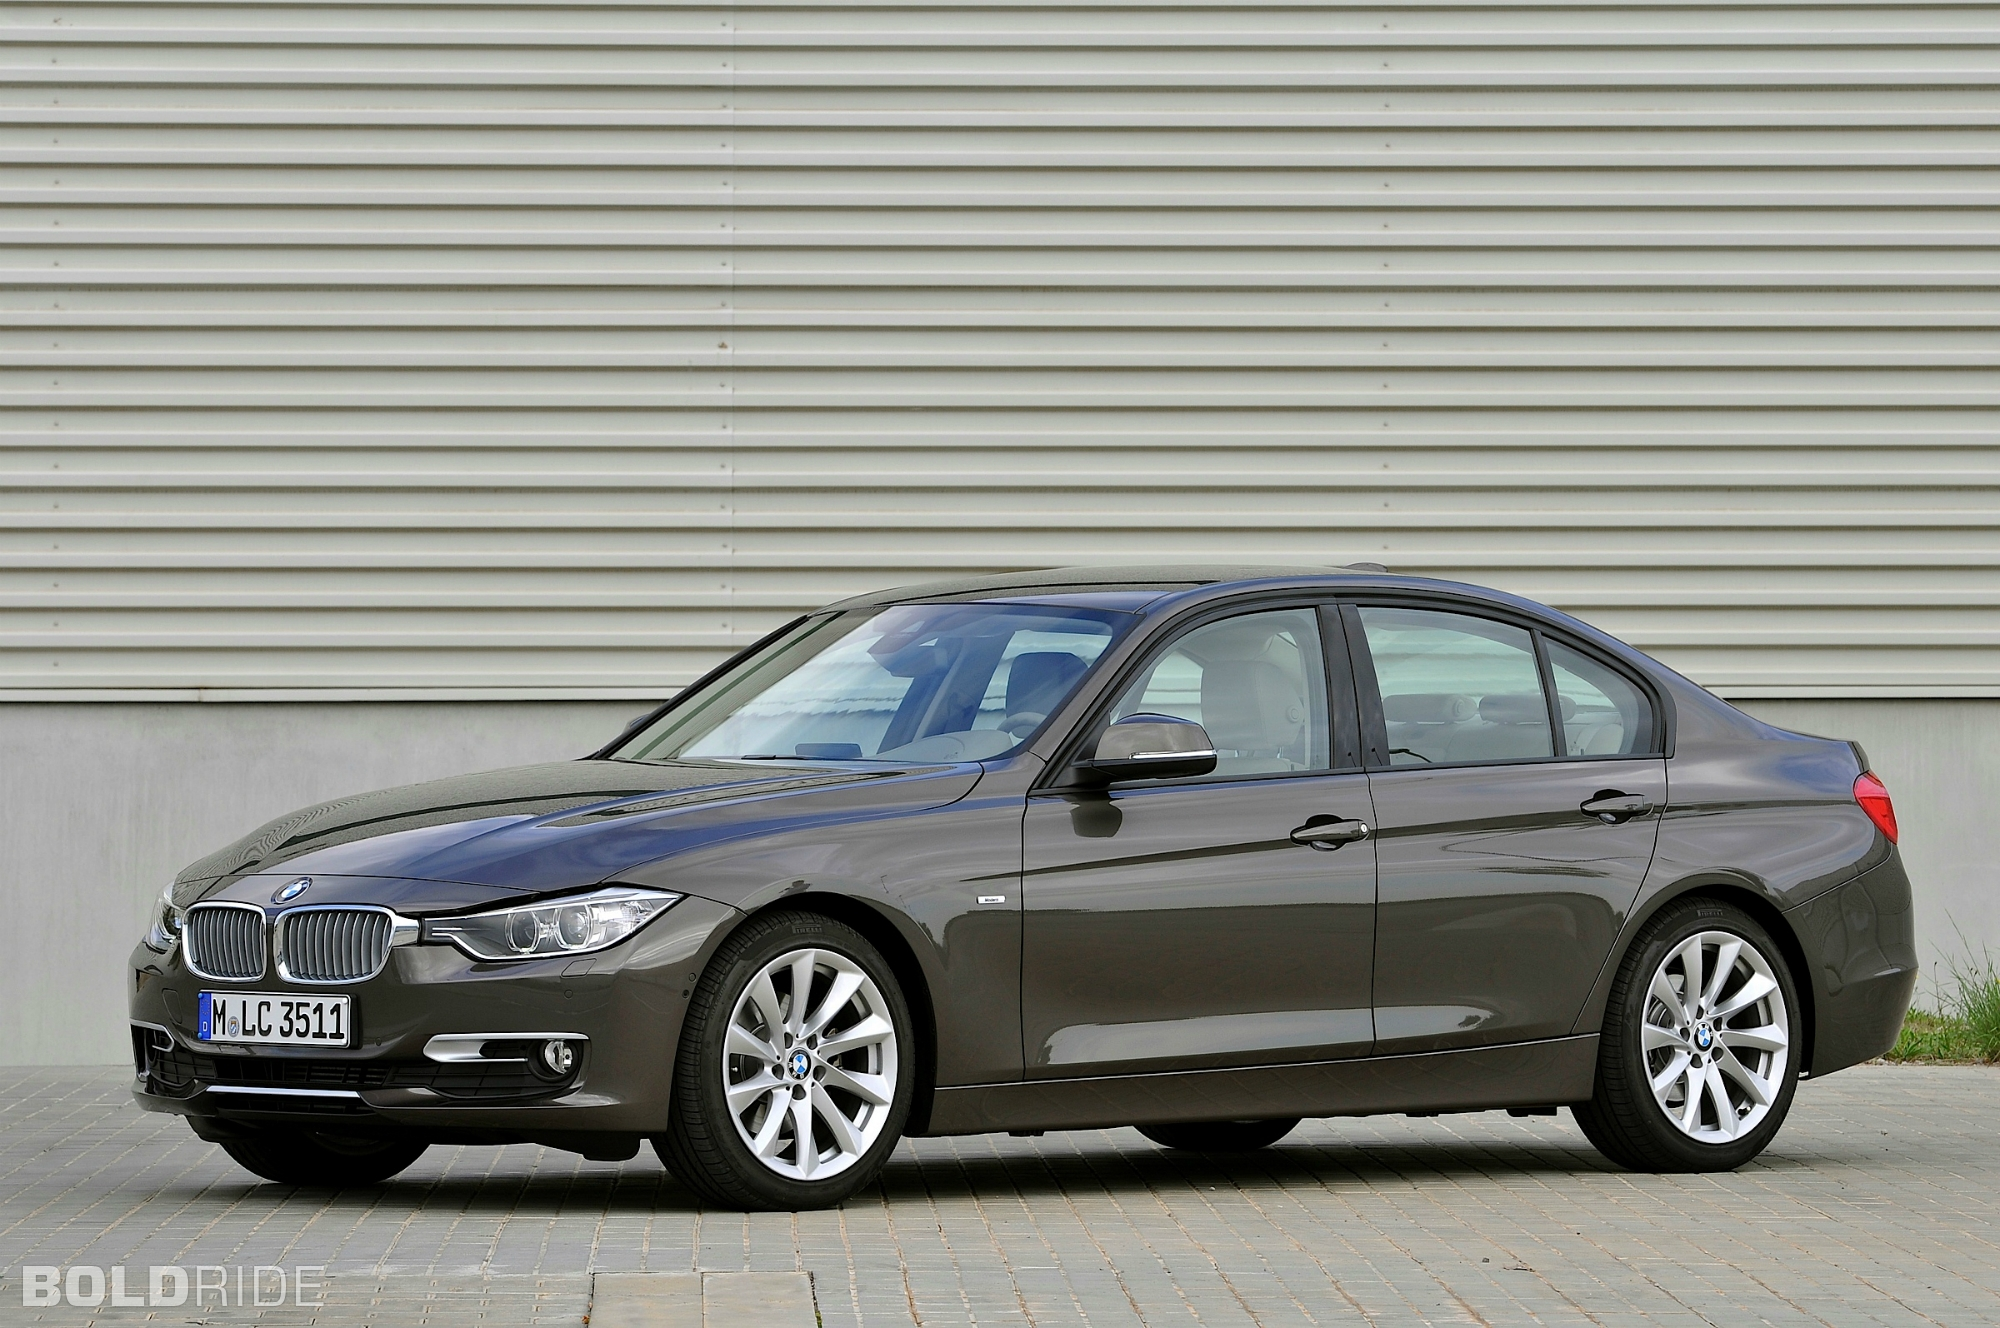 My Perfect Bmw 3 Series 3dtuning Probably The Best Car Configurator 335i Remote Start Wiring Diagram Sedan 2012